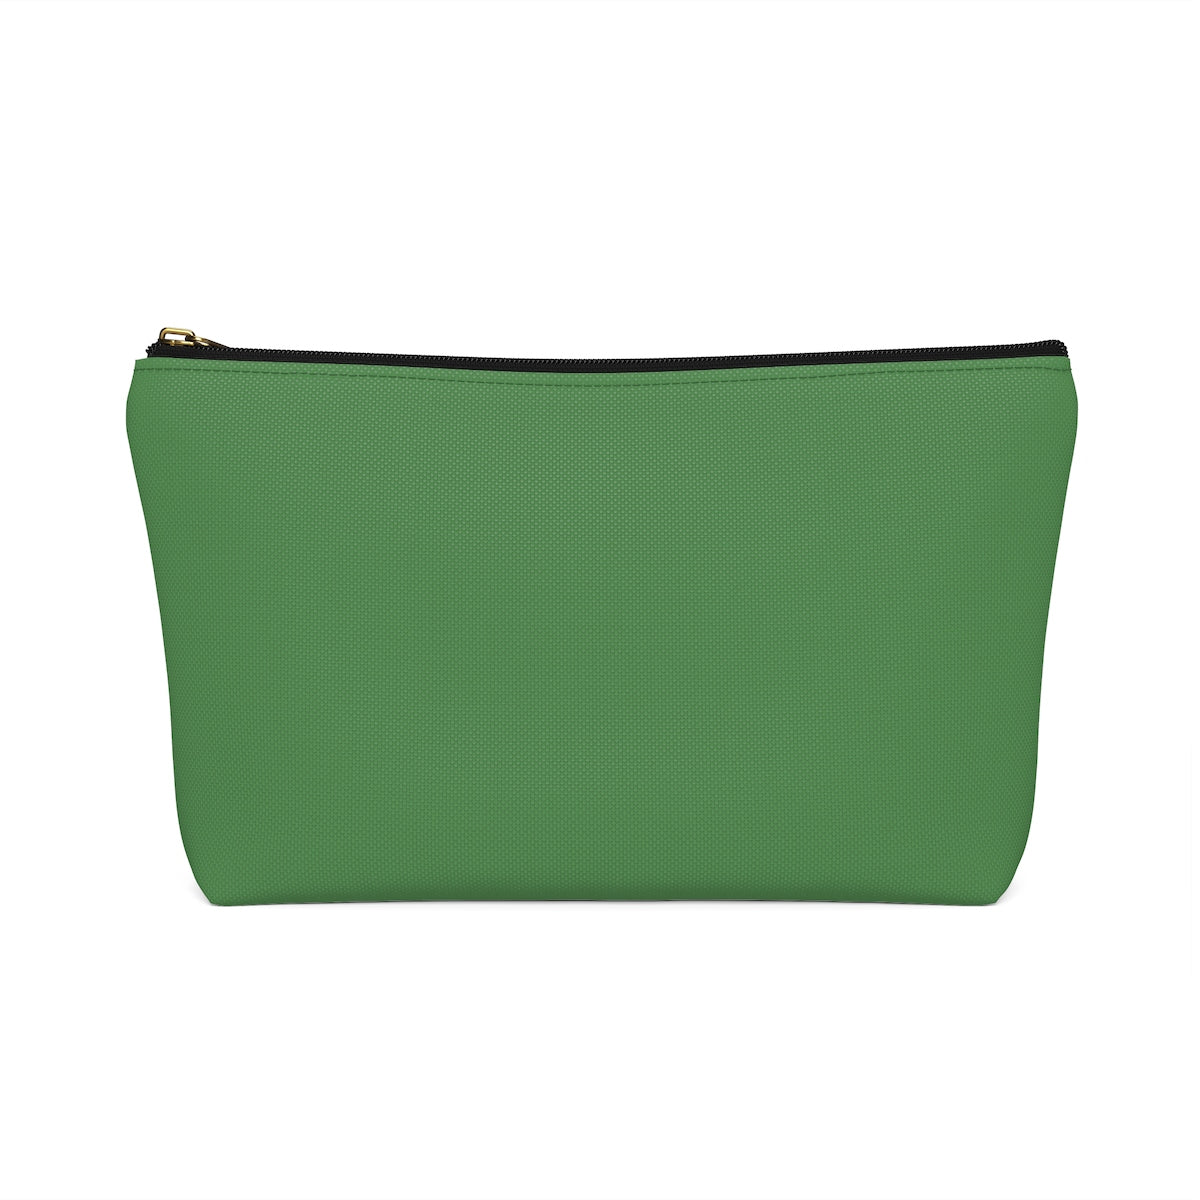 God's Square Mile Accessory Bag: Green - GoGannon Designs